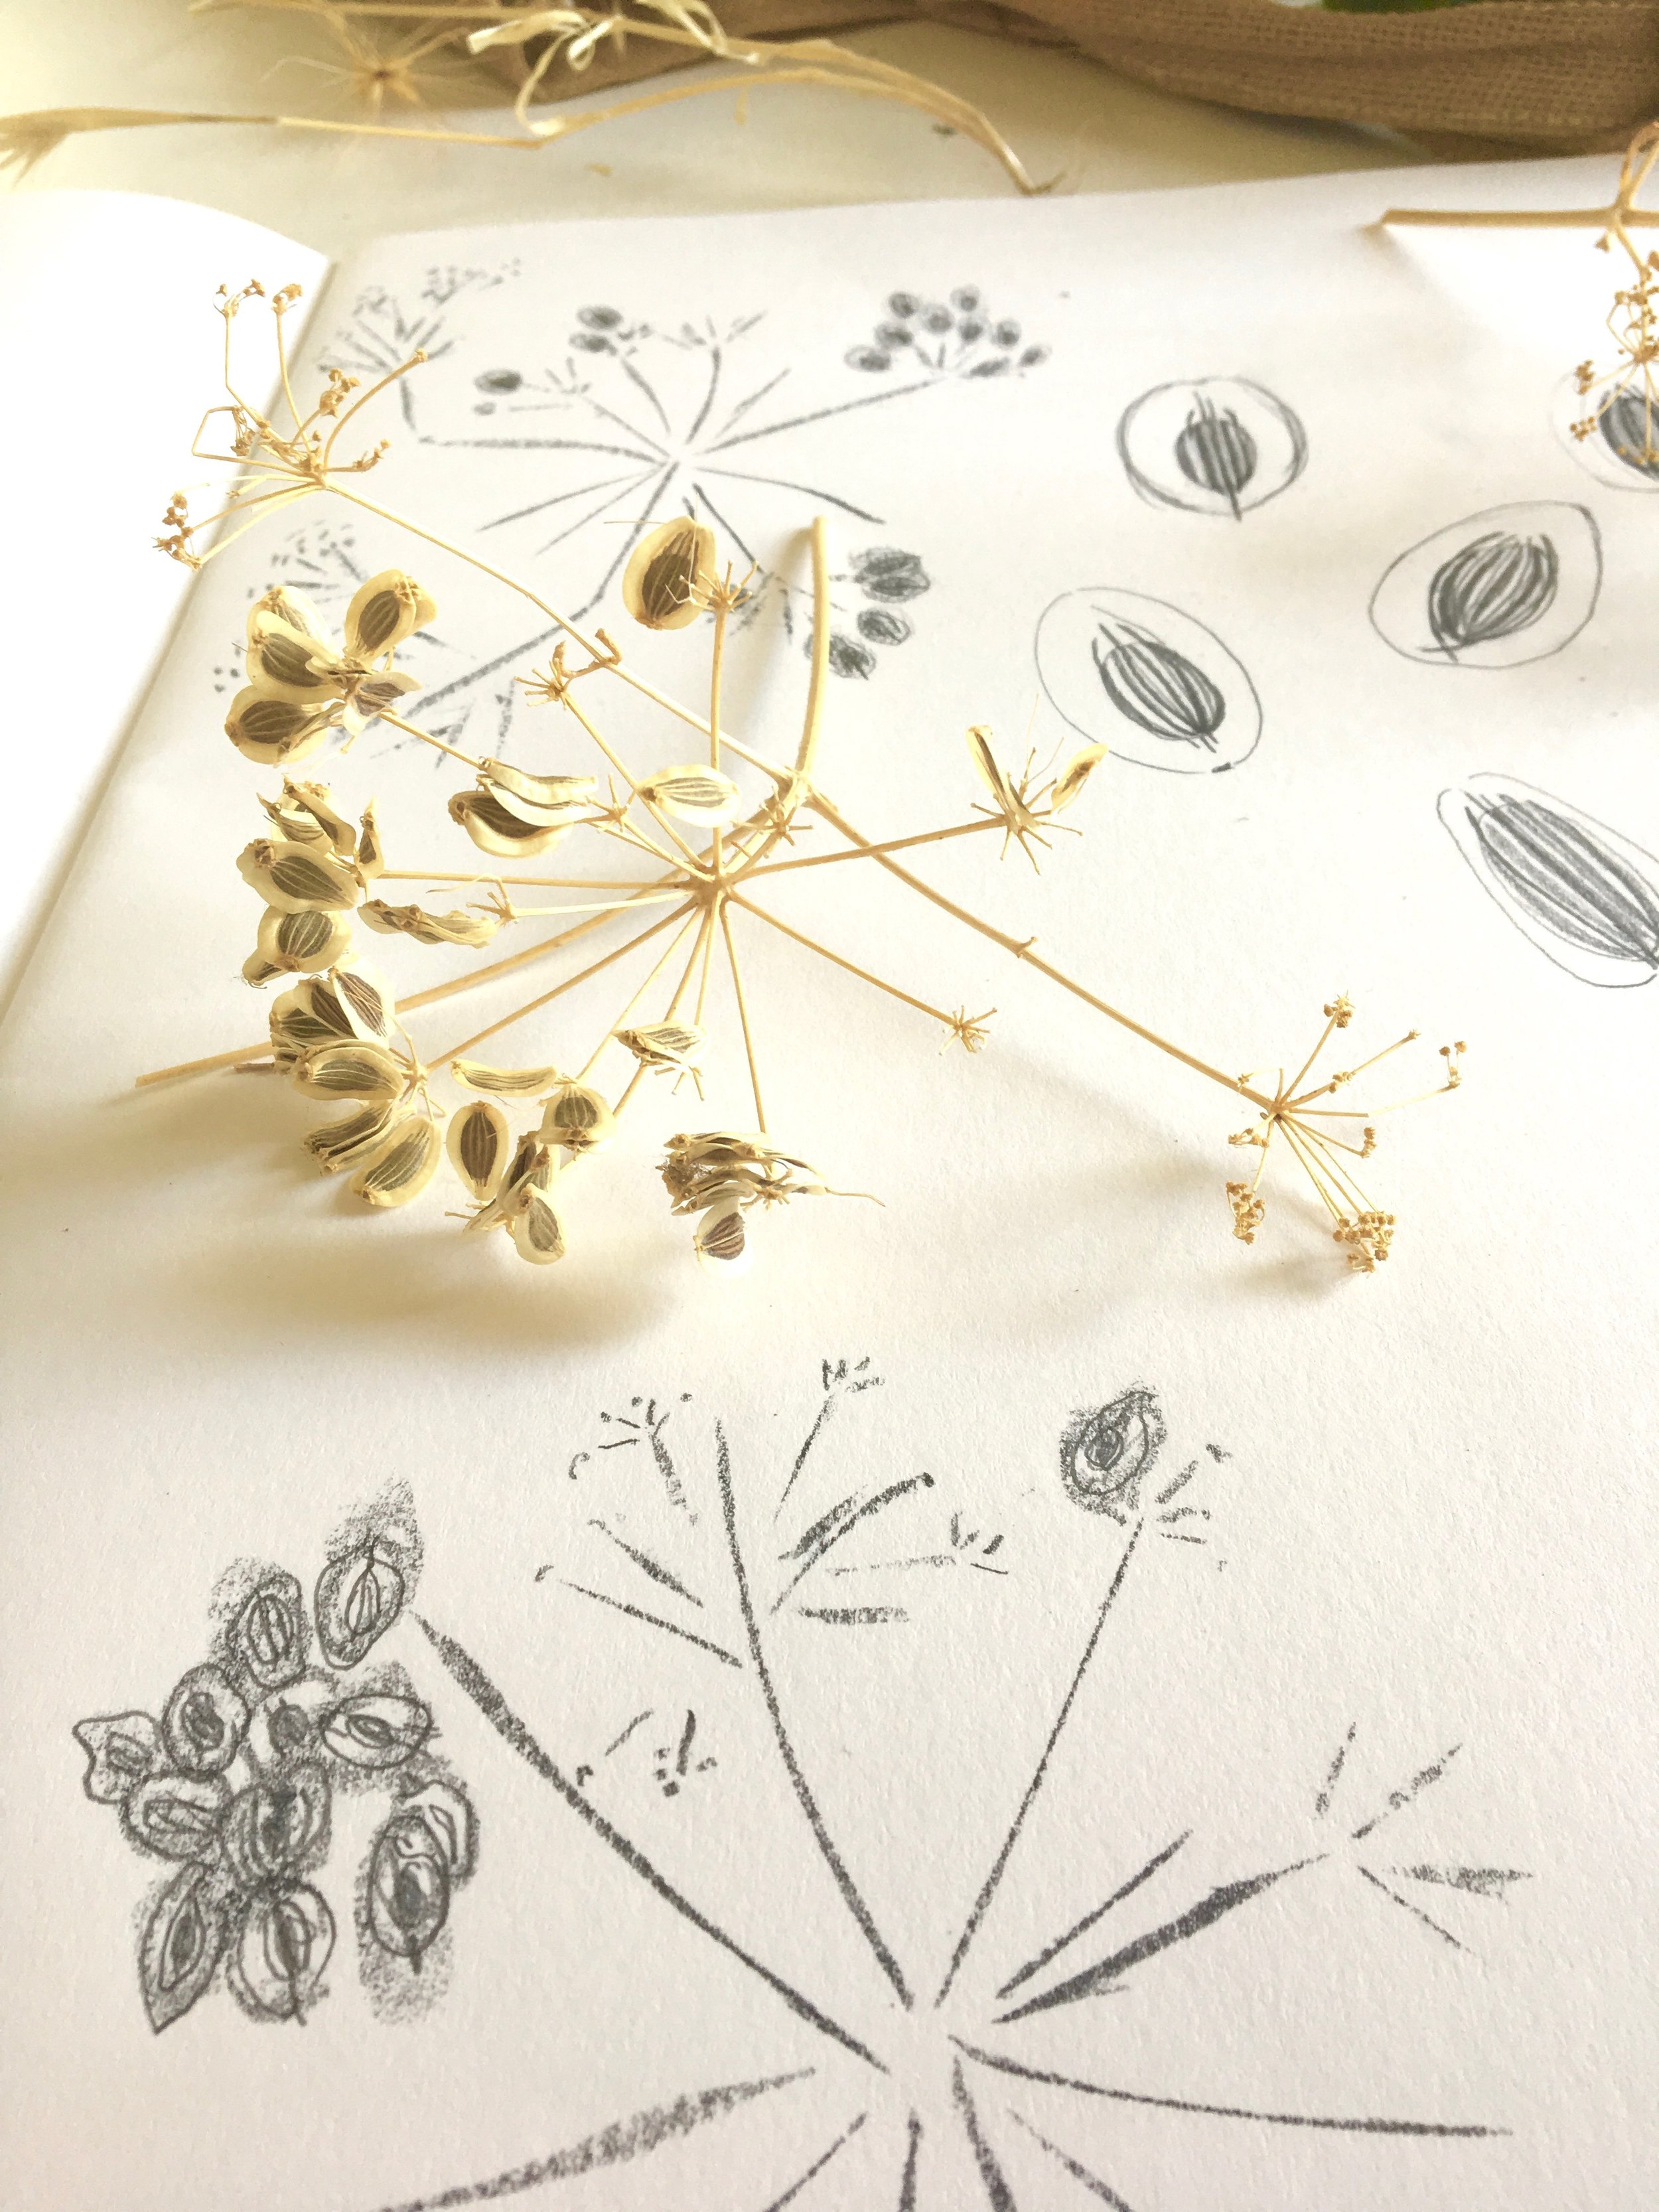 Seedhead and sketches